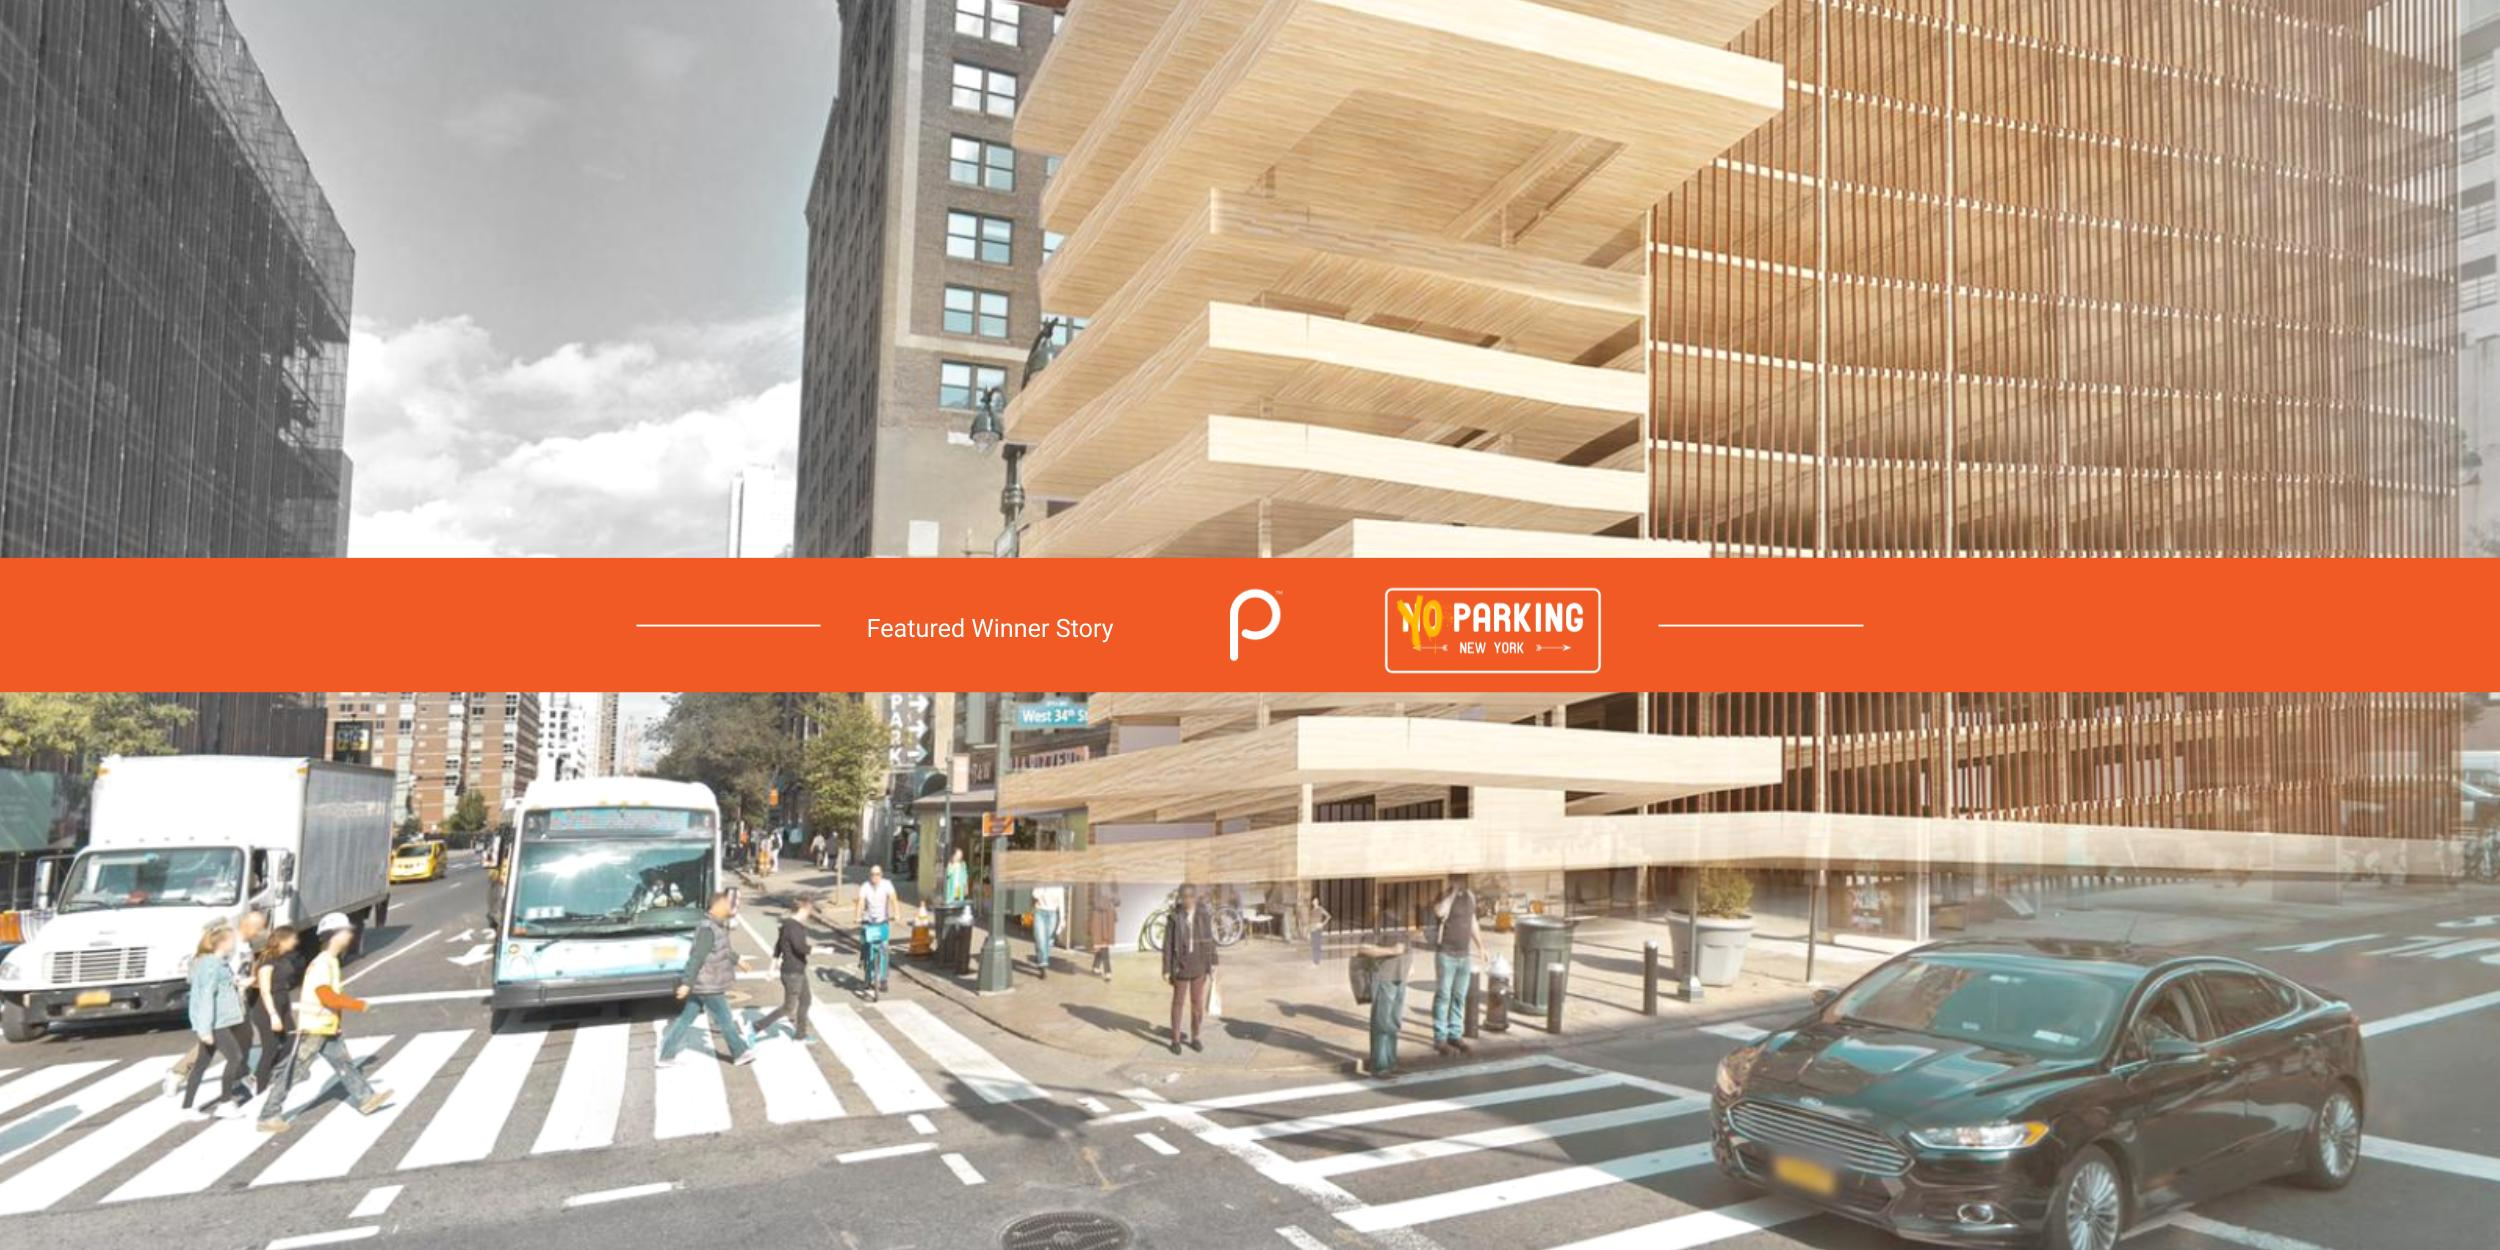 Reimagining Urban Parking